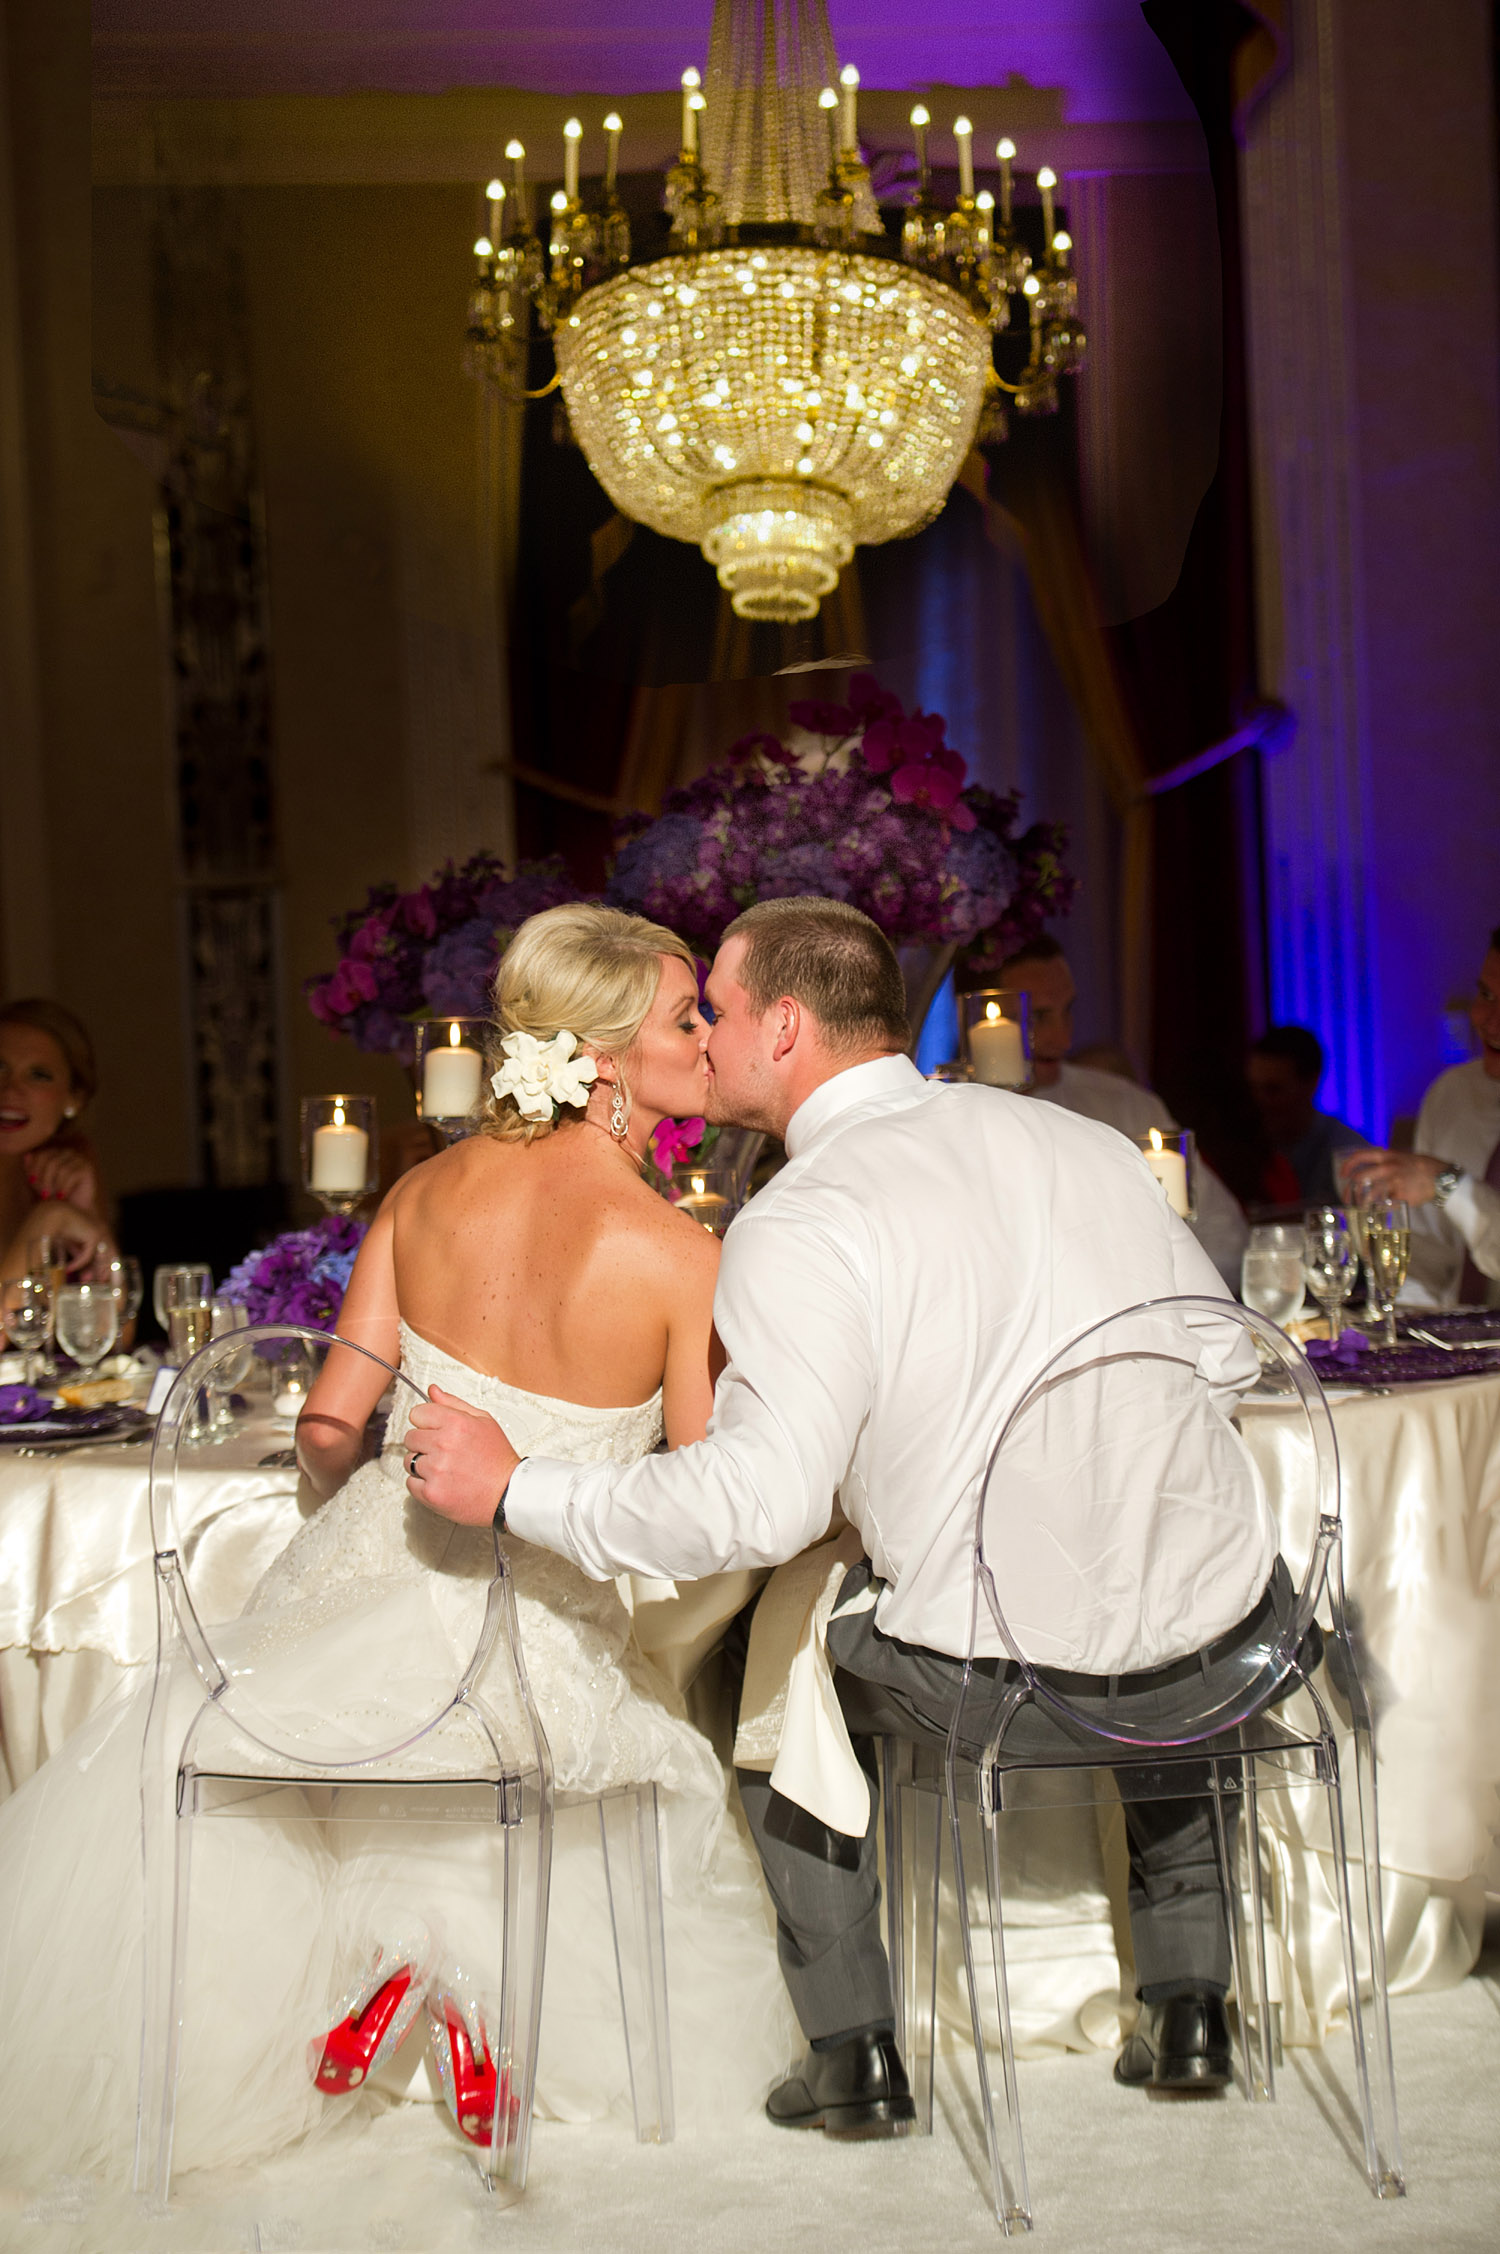 TOP DESTINATION WEDDING PHOTOGRAPHER LEXIA FRANK PHOTOGRAPHS PRO FOOTBALL PLAYER GREEN BAY PACKER BRYAN BULAGAS WEDDING AT THE HILTON CITY CENTER IN DOWNTOWN MILWAUKEE. LUCITE CLEAR CHAIRS WITH PURPLE FLORAL  AND LOUBOUTIN BRIDAL SHOES